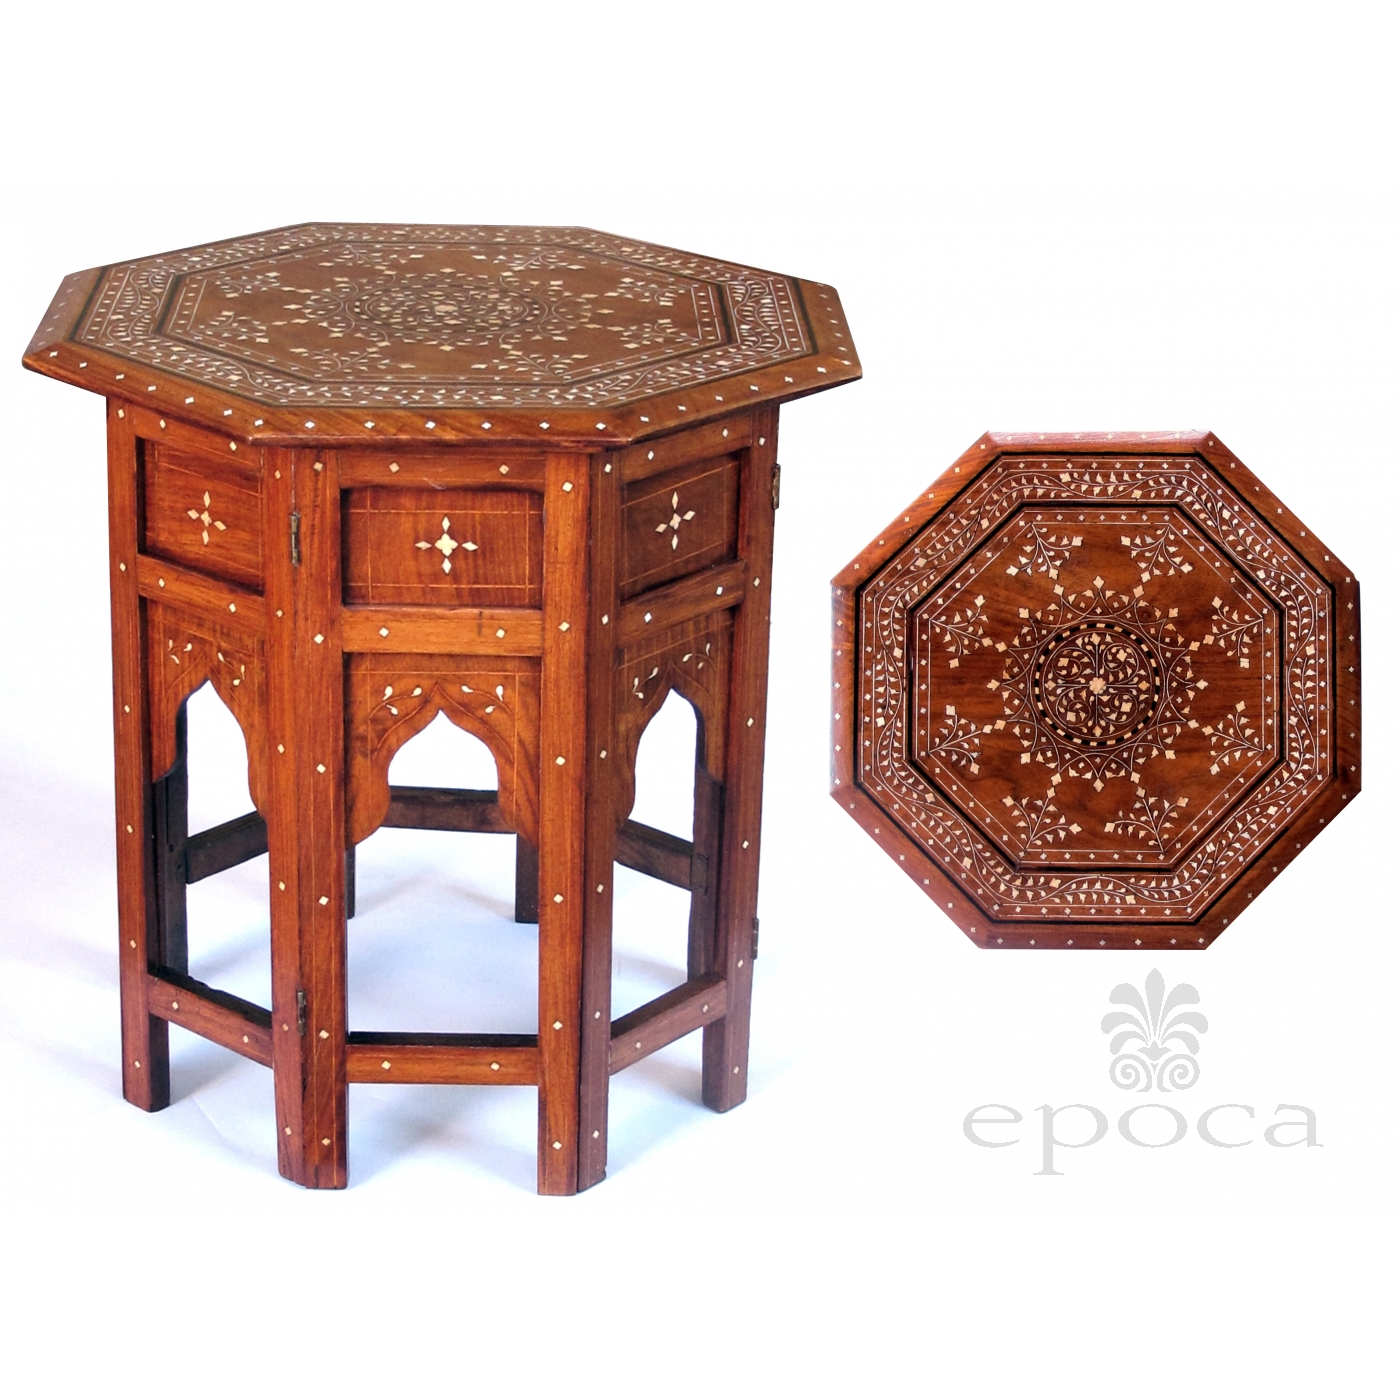 an intricately inlaid anglo indian 19th century octagonal